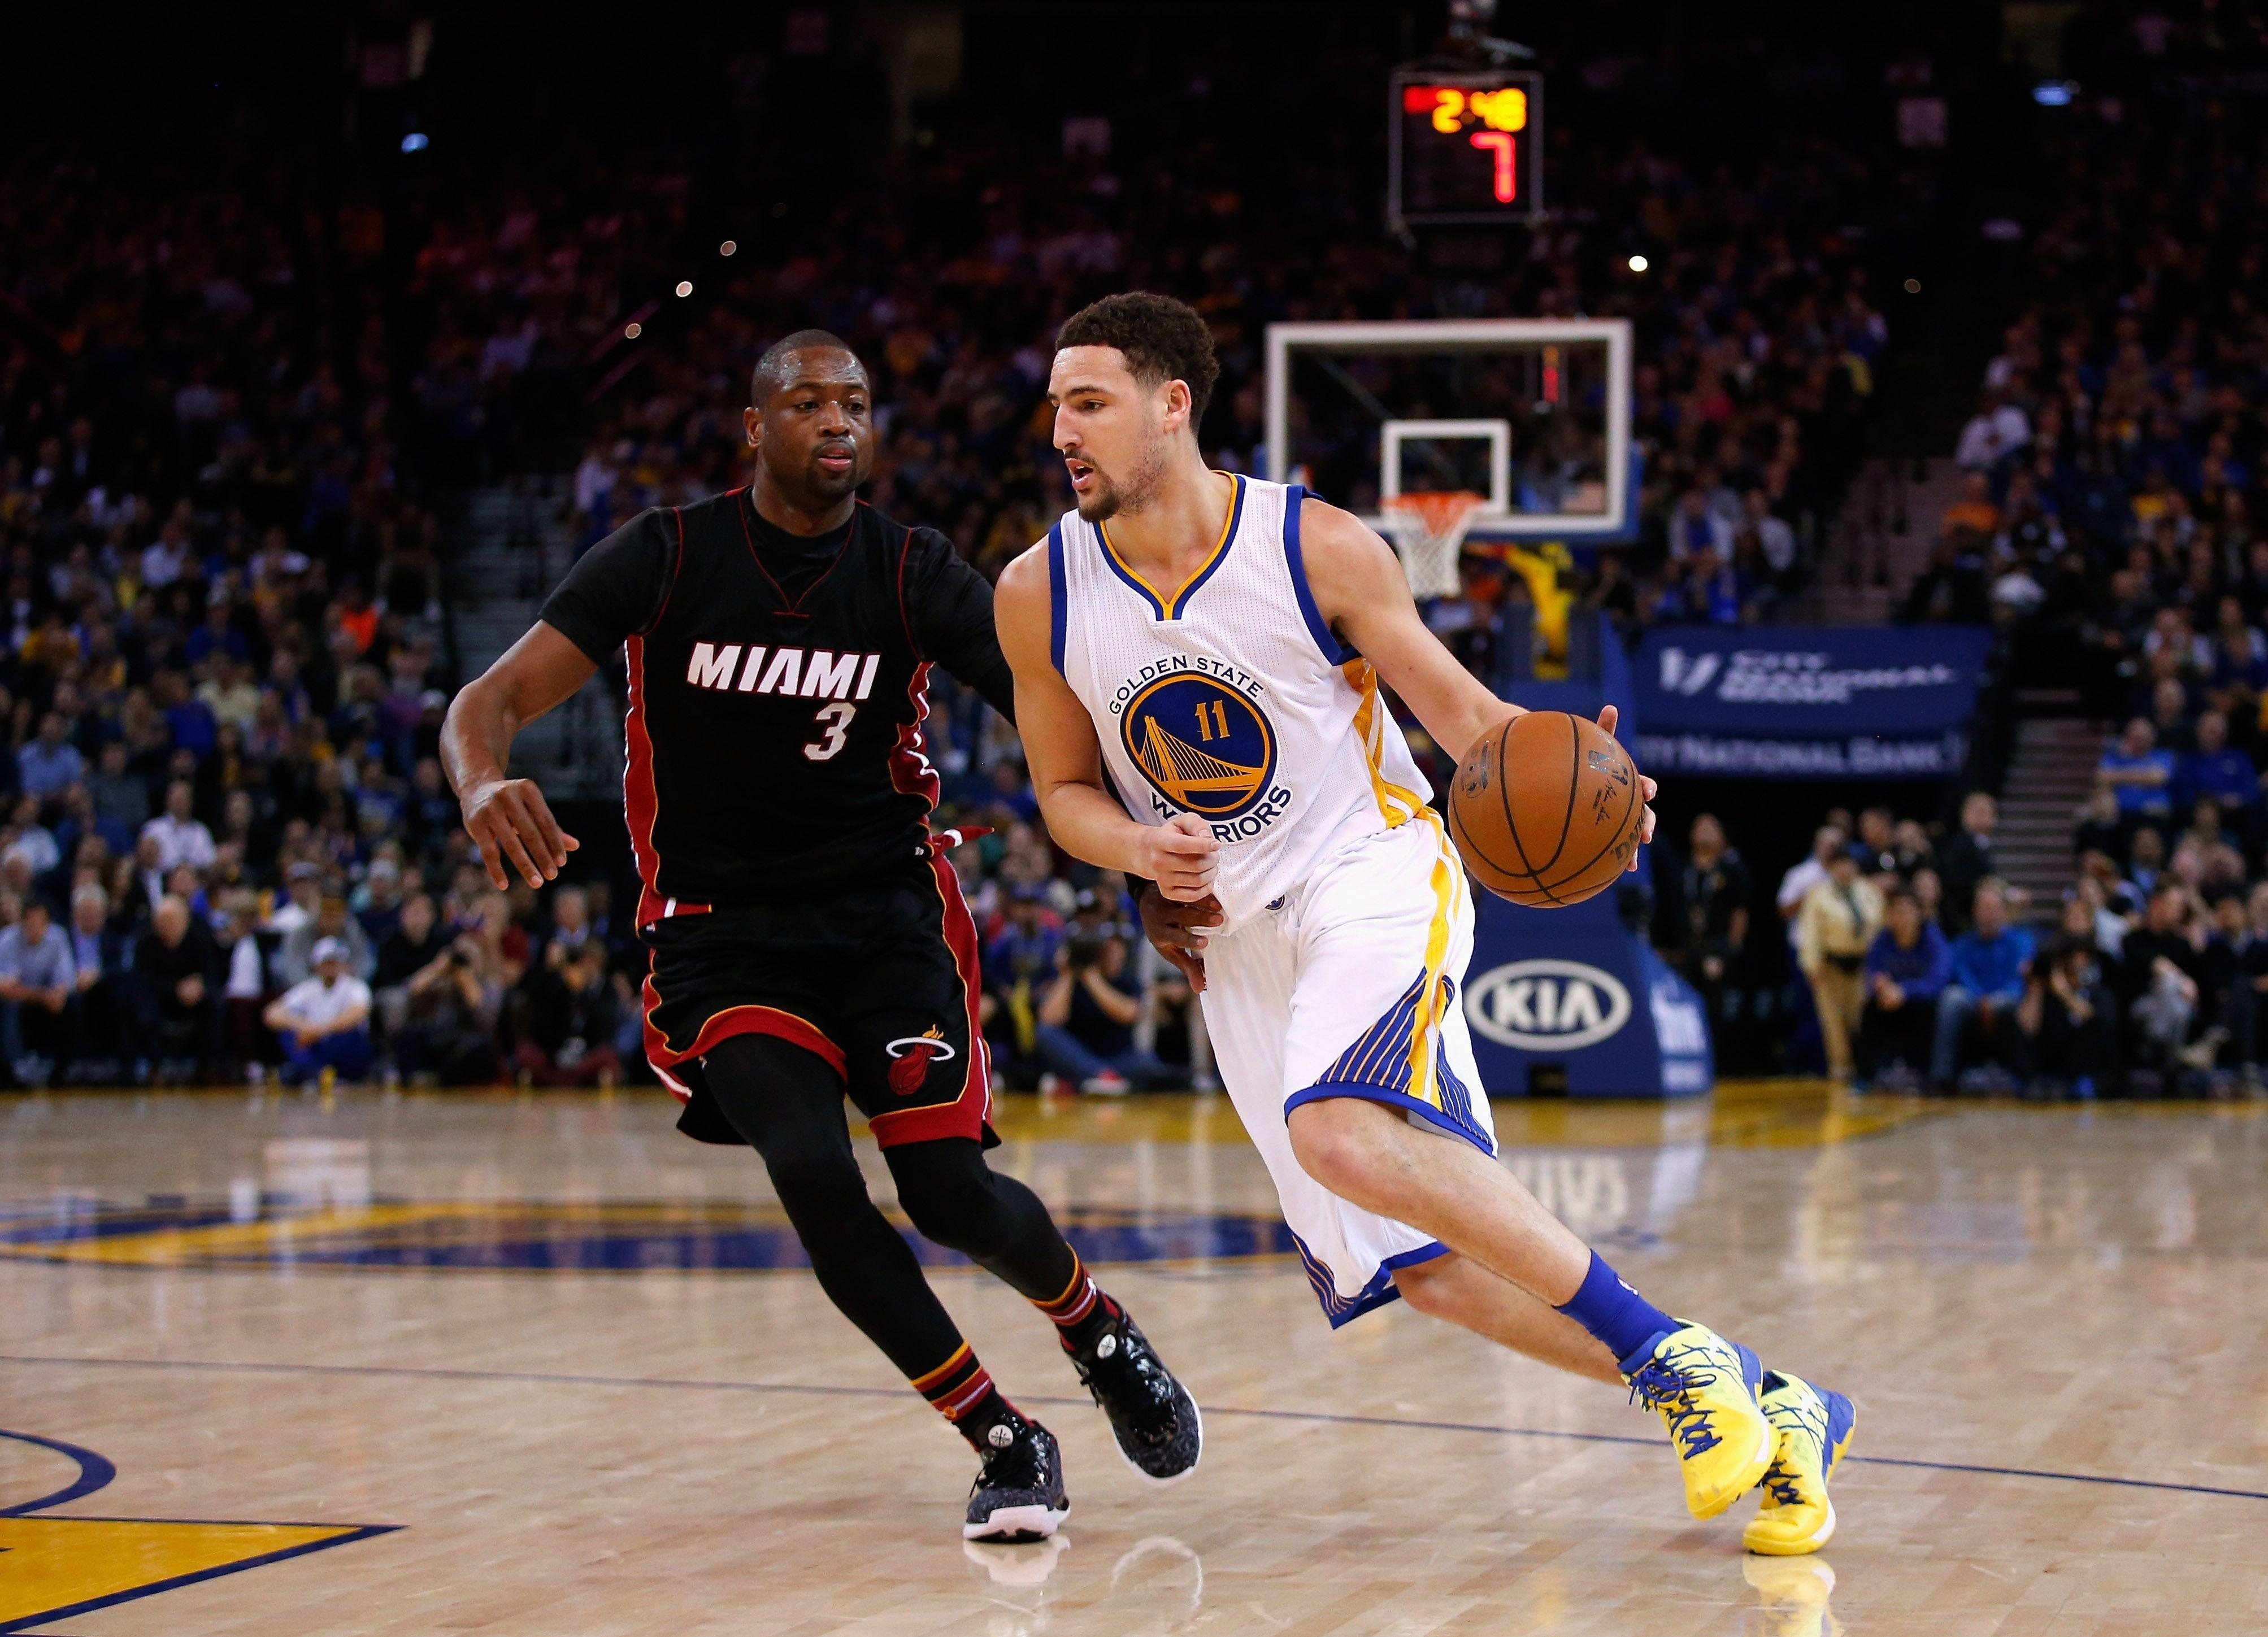 Does Dwyane Wade want the Golden State Warriors to get to 73 wins